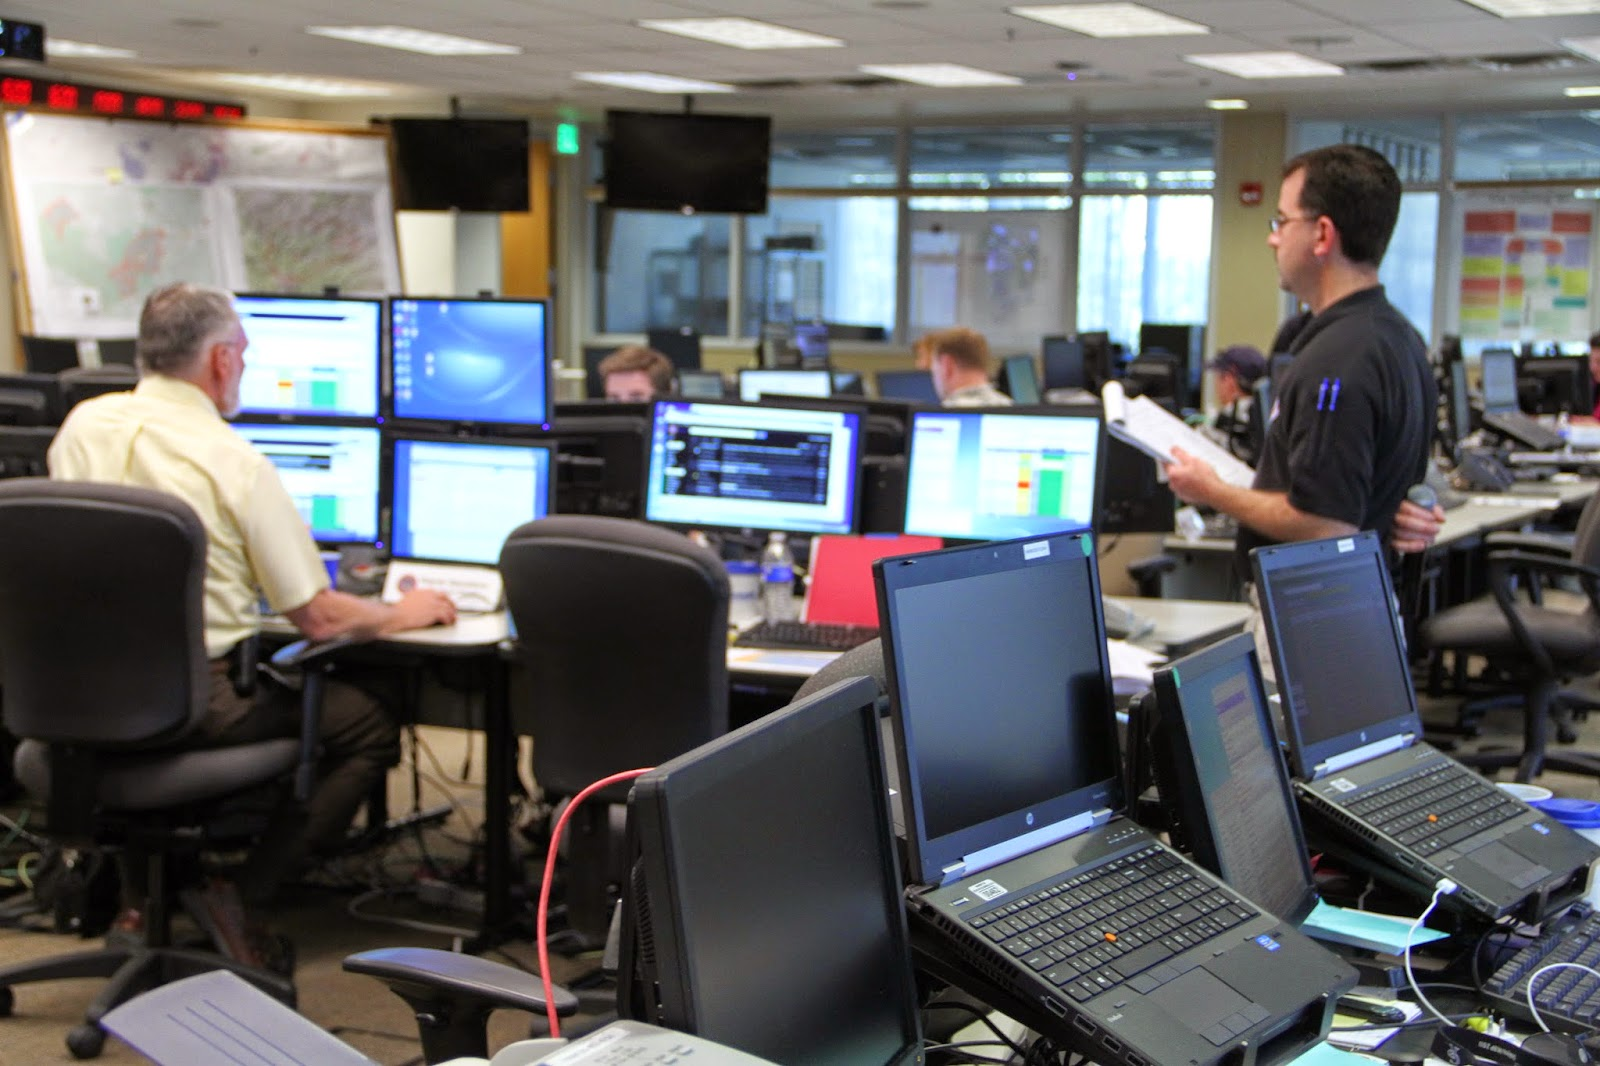 Chris Sorensen leads a State EOC briefing call during 2013 activation.